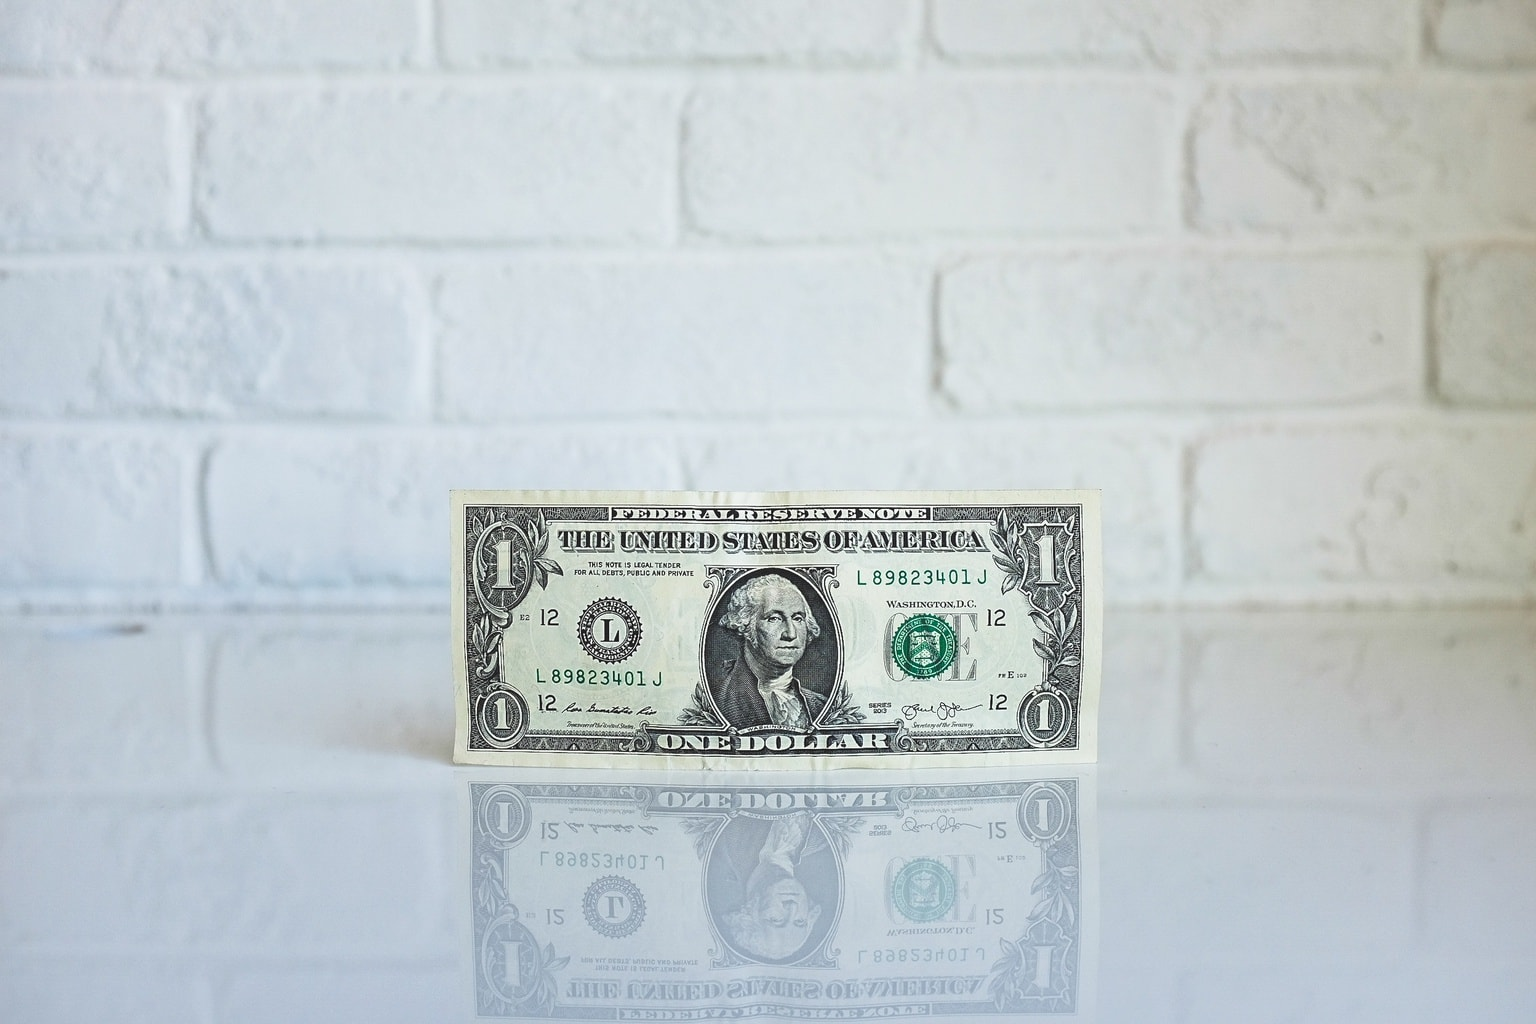 One lonely dollar bill